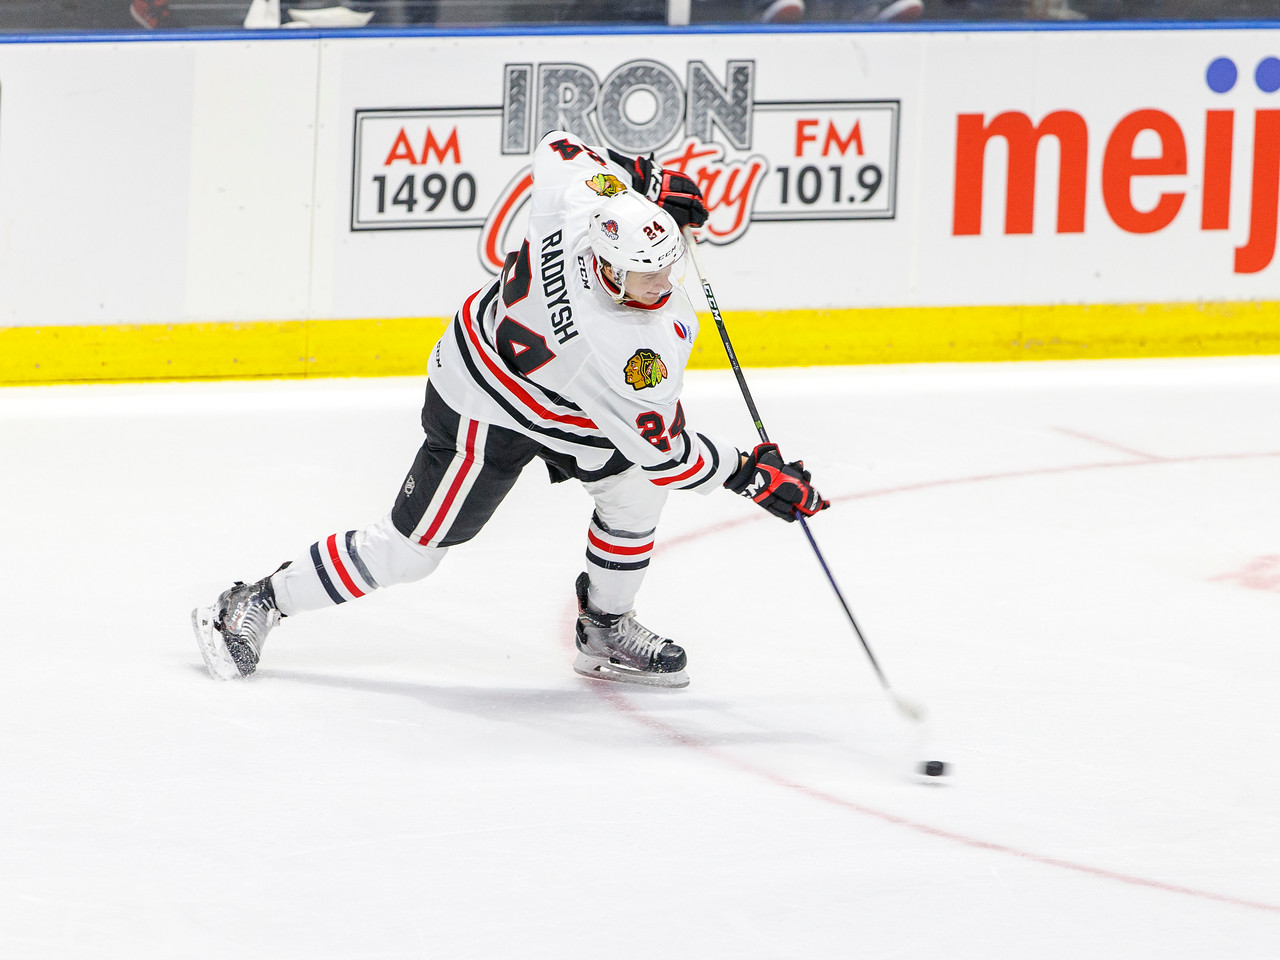 IMAGE: https://photos.smugmug.com/Sports/HockeyPhotos/IceHogs-2017-2018/10-15-17-IceHogs-vs-Admirals/i-vj74k3B/0/e7686bcc/X2/CC6Q4164_0757-X2.jpg